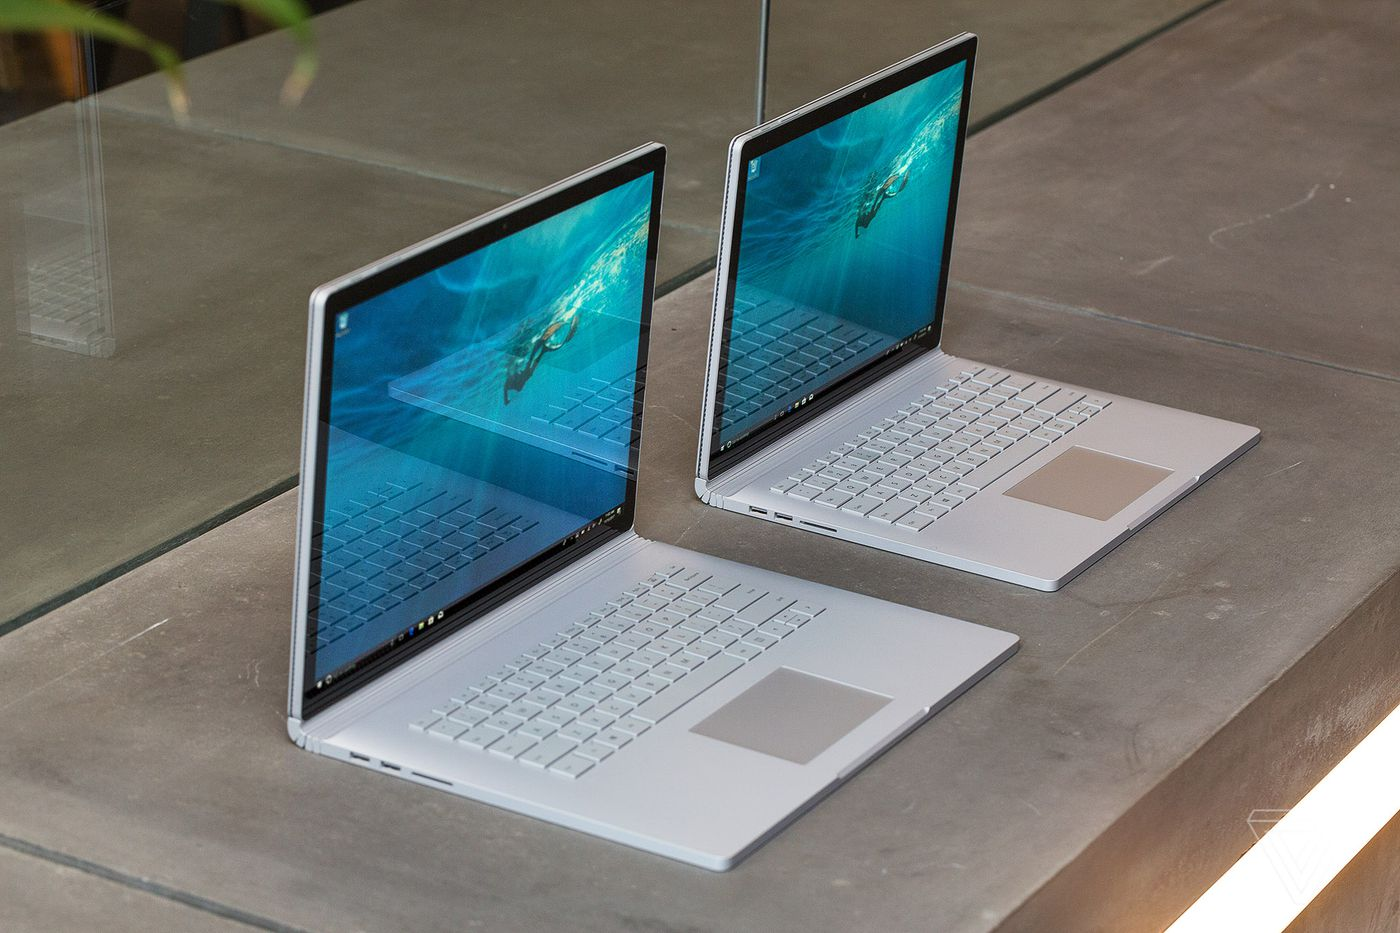 Microsoft Surface Book 2 review: beauty and brawn, but with